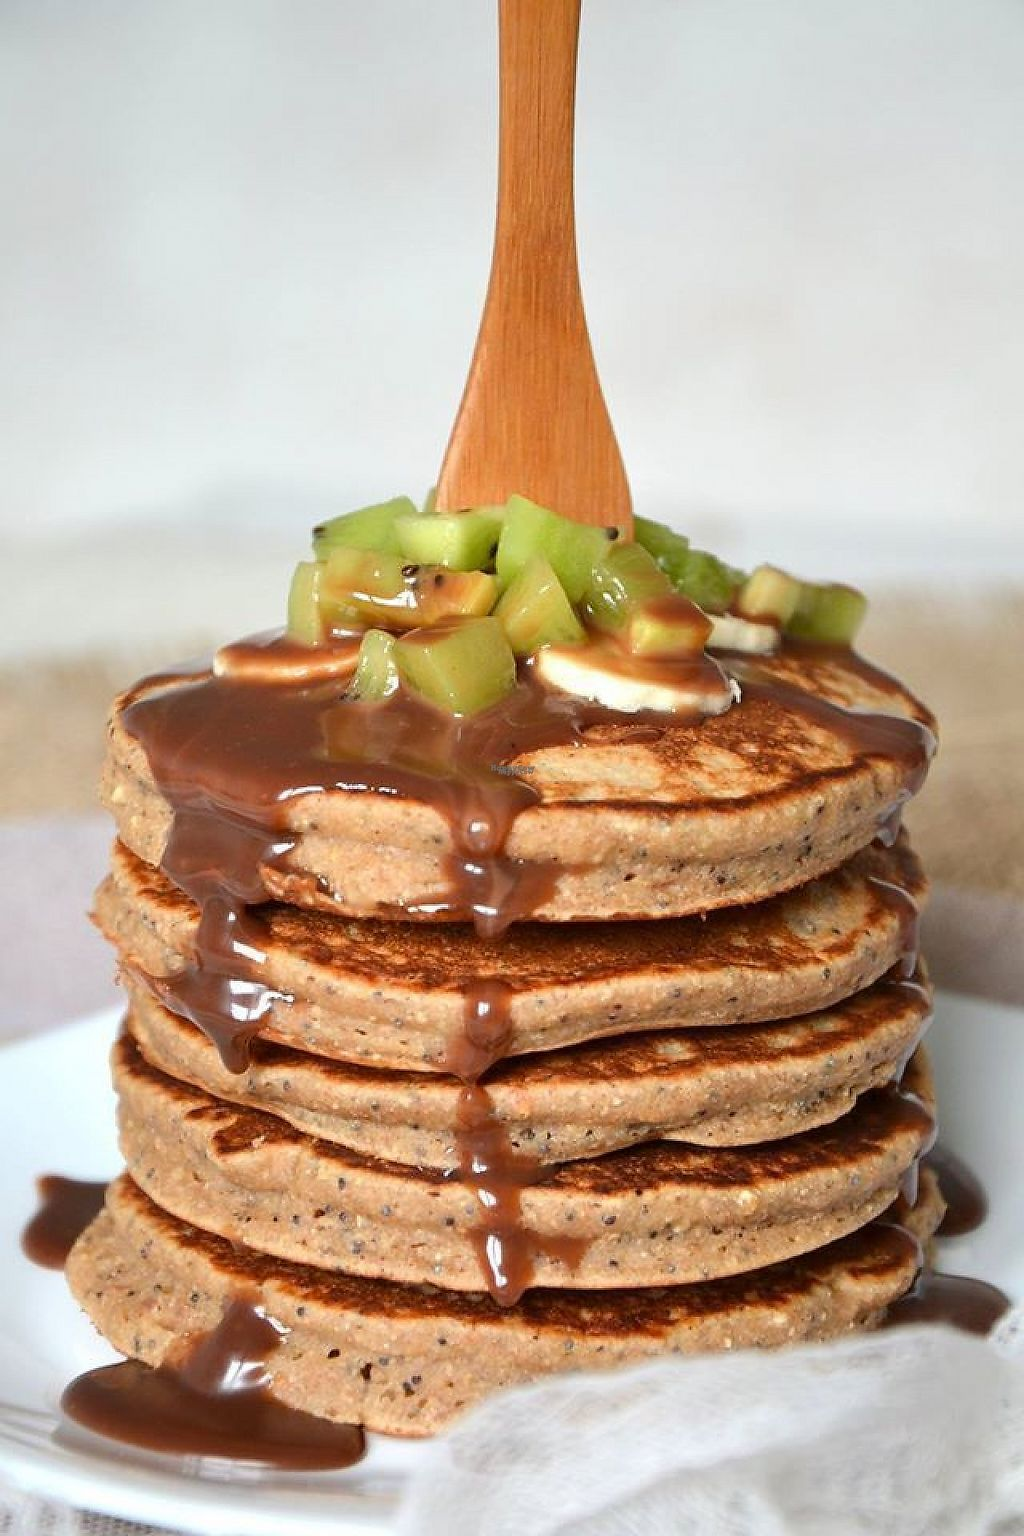 """Photo of La Vie Claire  by <a href=""""/members/profile/community"""">community</a> <br/>vegan pancakes  <br/> February 4, 2017  - <a href='/contact/abuse/image/72024/221876'>Report</a>"""